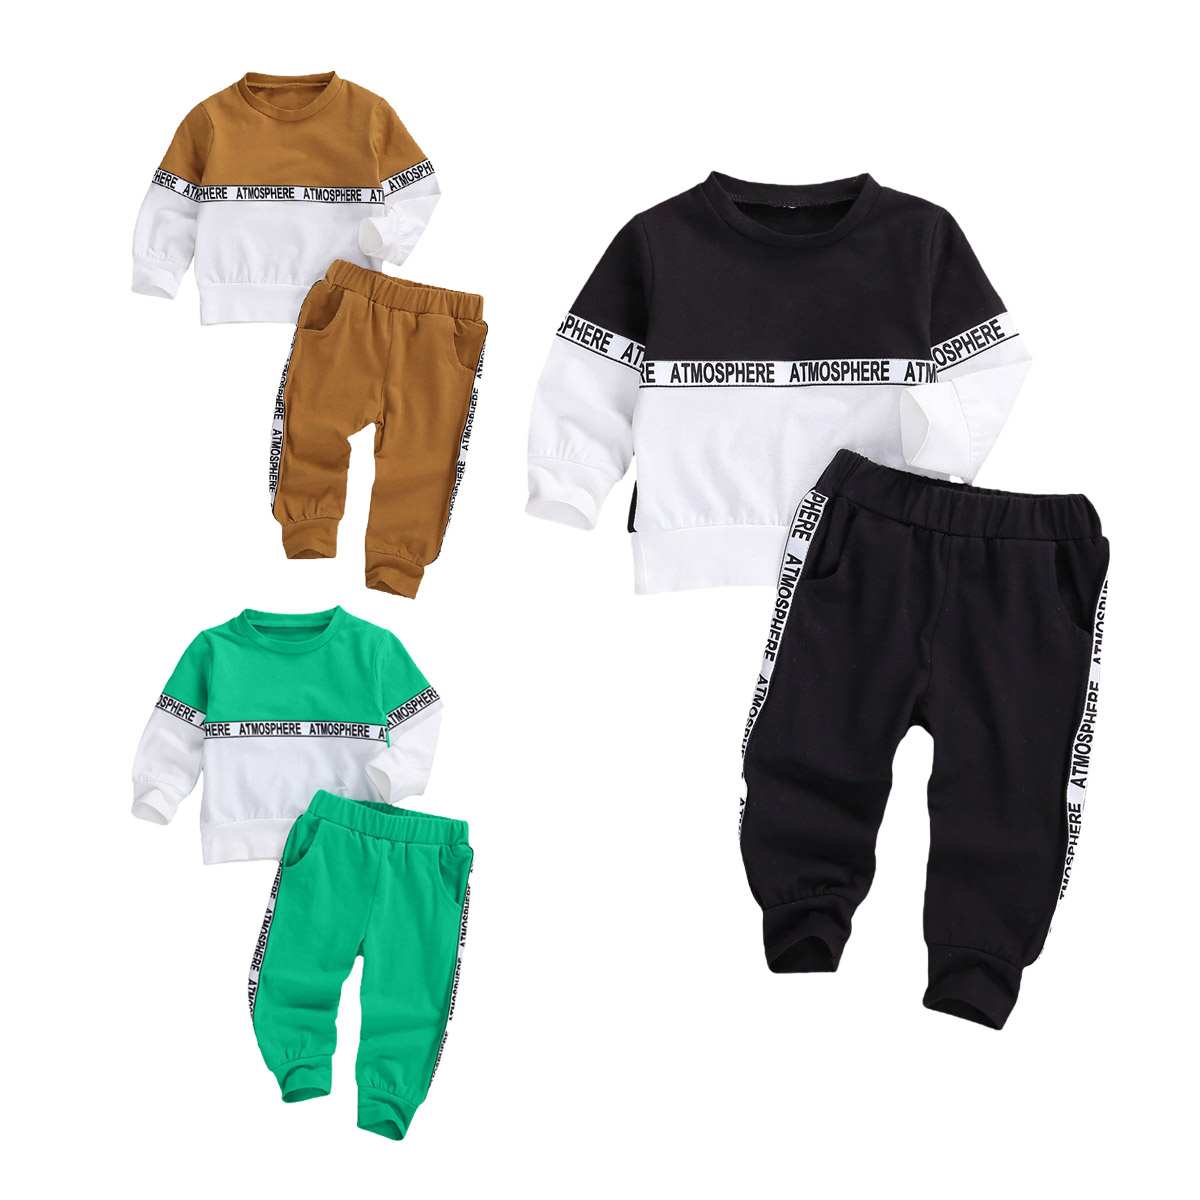 2020 Autumn Spring Baby Girls Boys Clothing Set Children Long Sleeve Round Neck Two-tone Stitching Top+ Elastic Waist Pants 1-4T